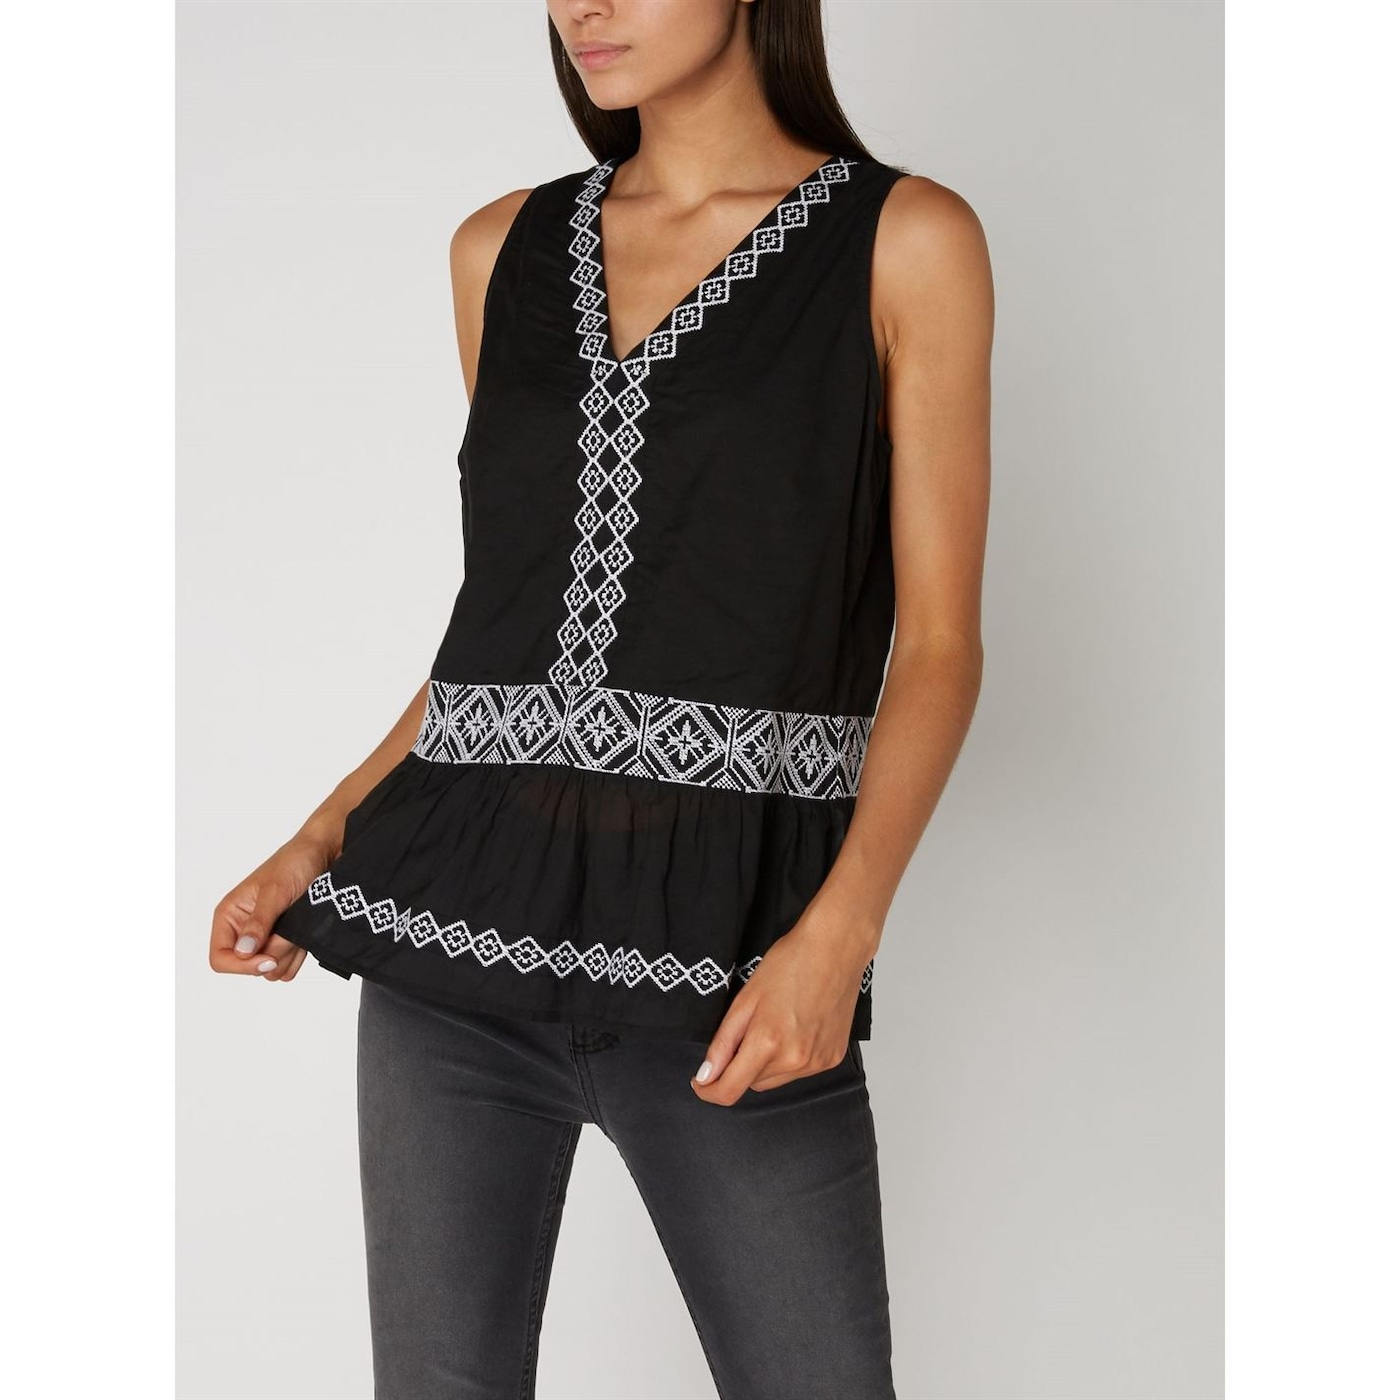 Label Lab Grace embroidered top